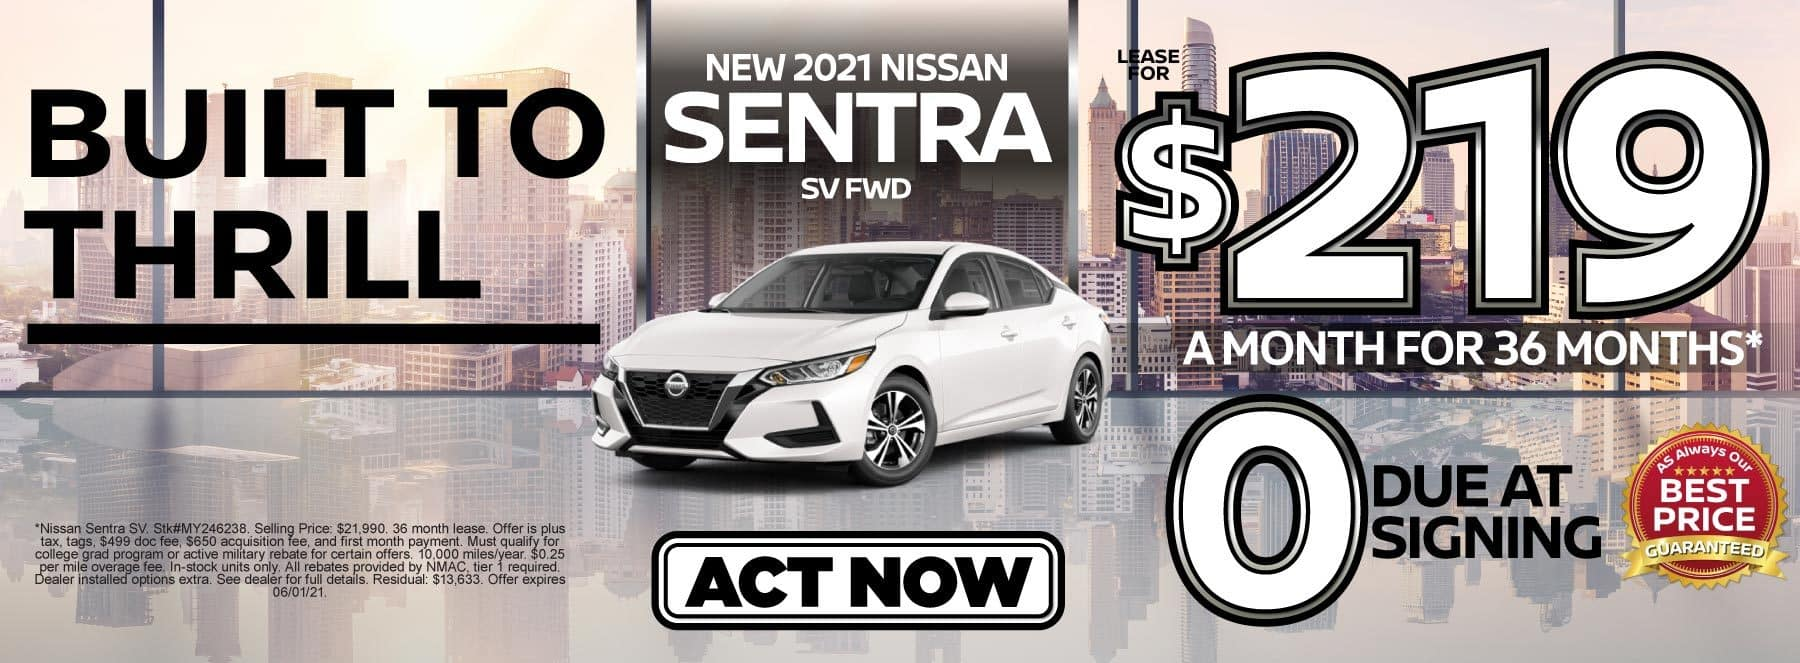 New 2021 Nissan Sentra lease for $219 a month | Act Now